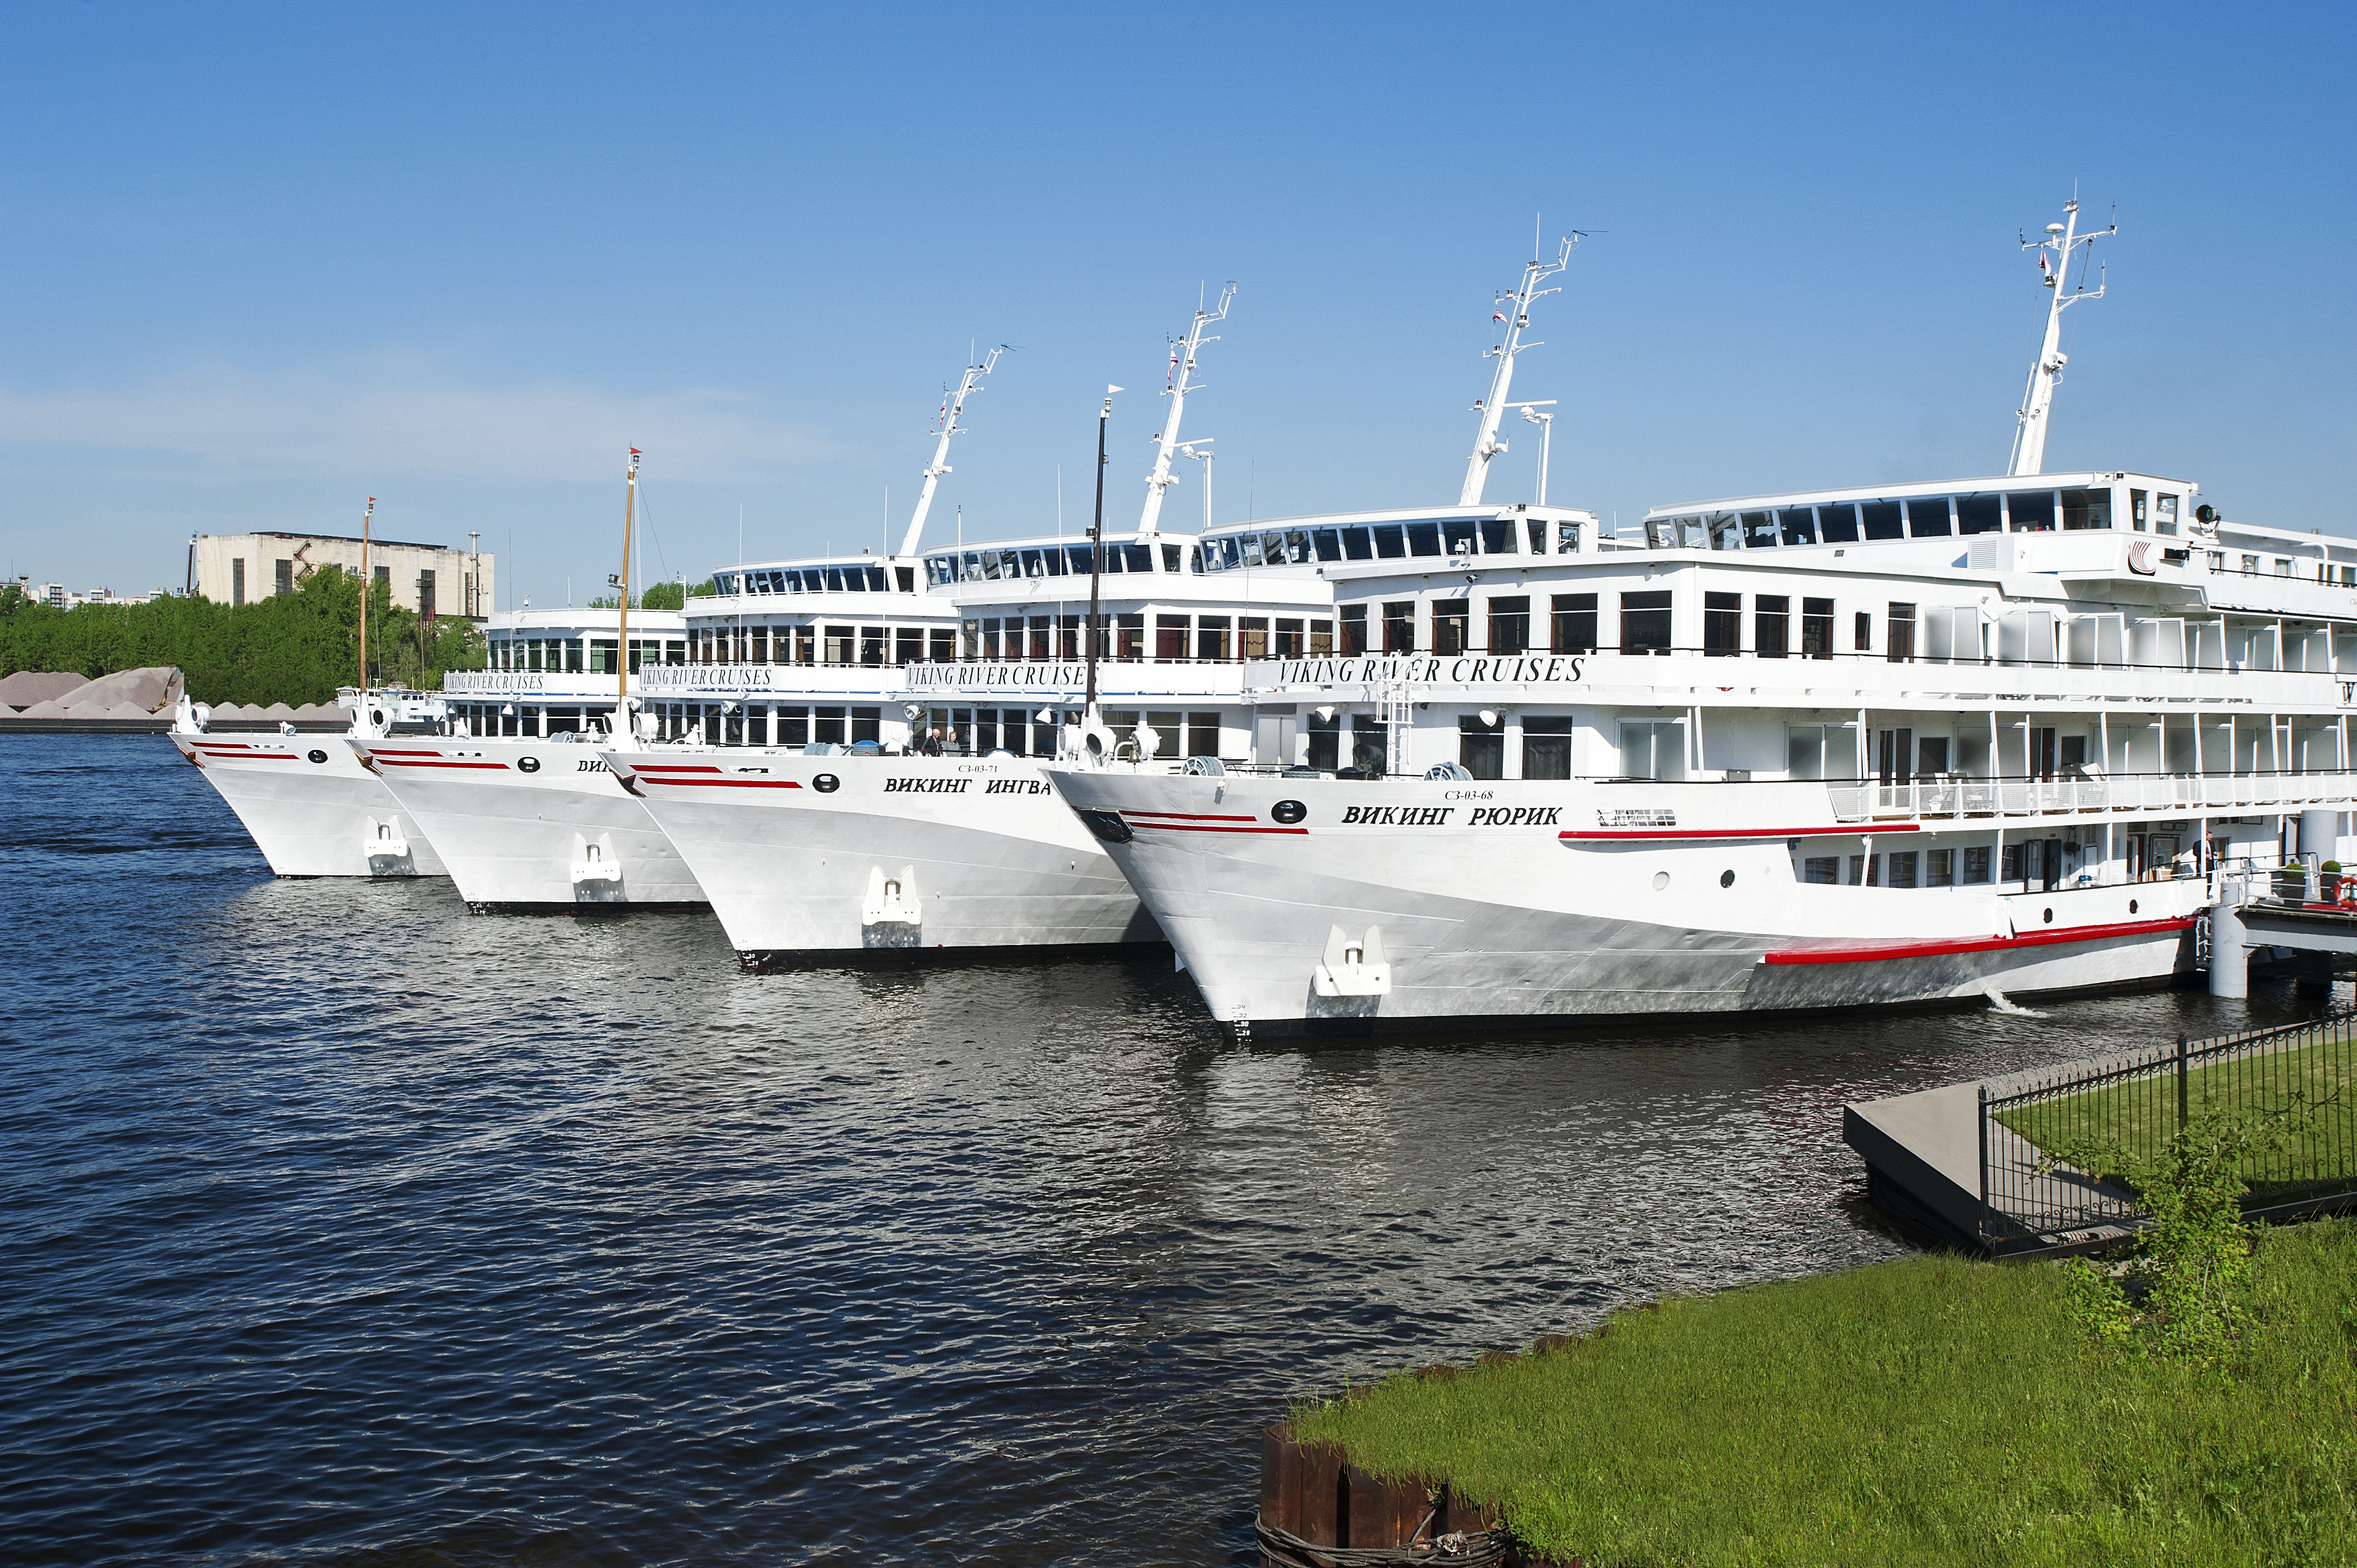 Displaying 18 gt images for viking river cruises longship